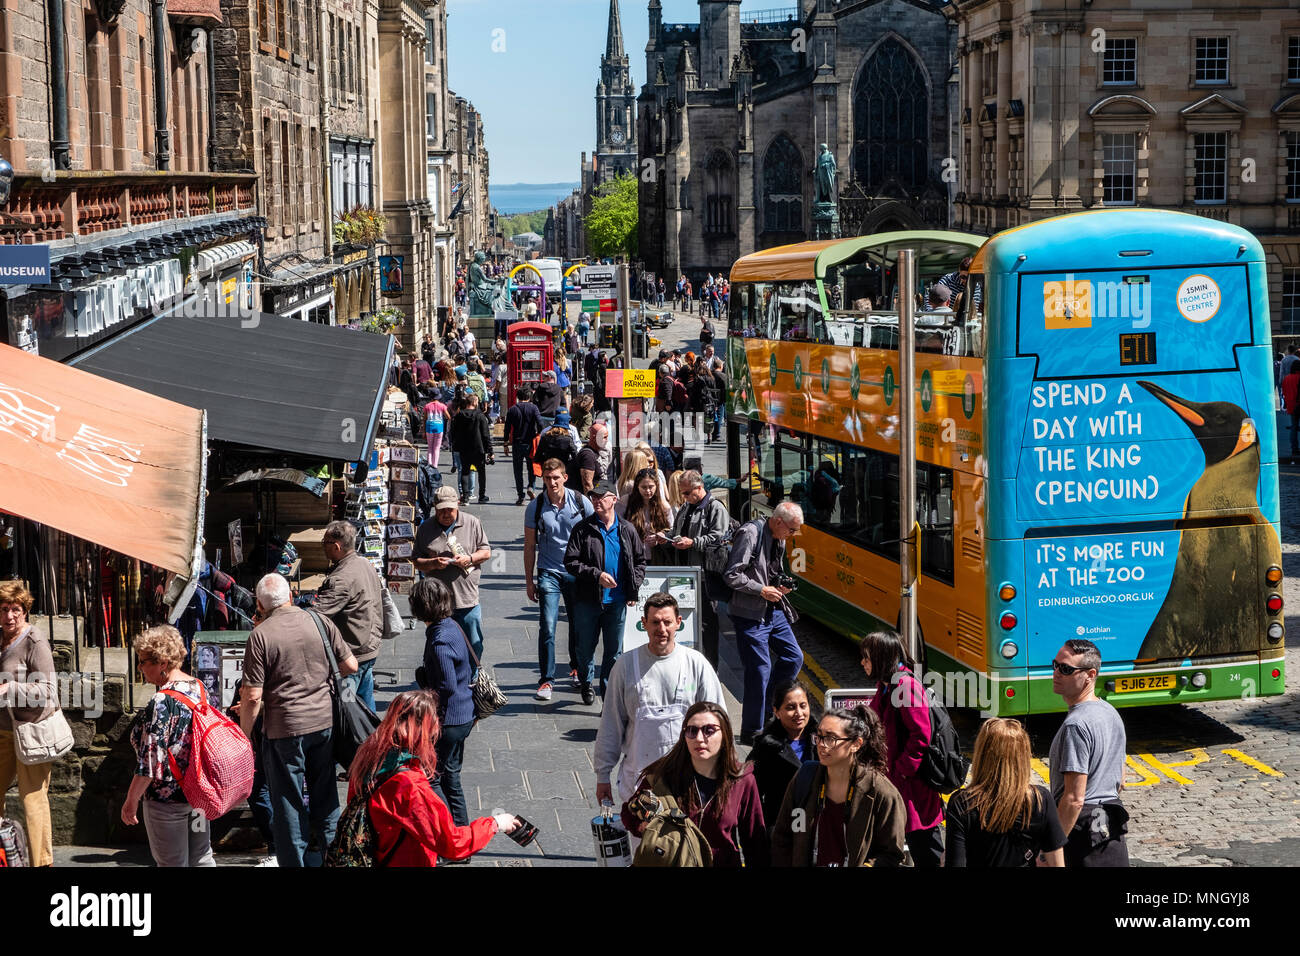 View along the Royal Mile with many tourists and tour bus in Old Town of Edinburgh, Scotland, UK - Stock Image